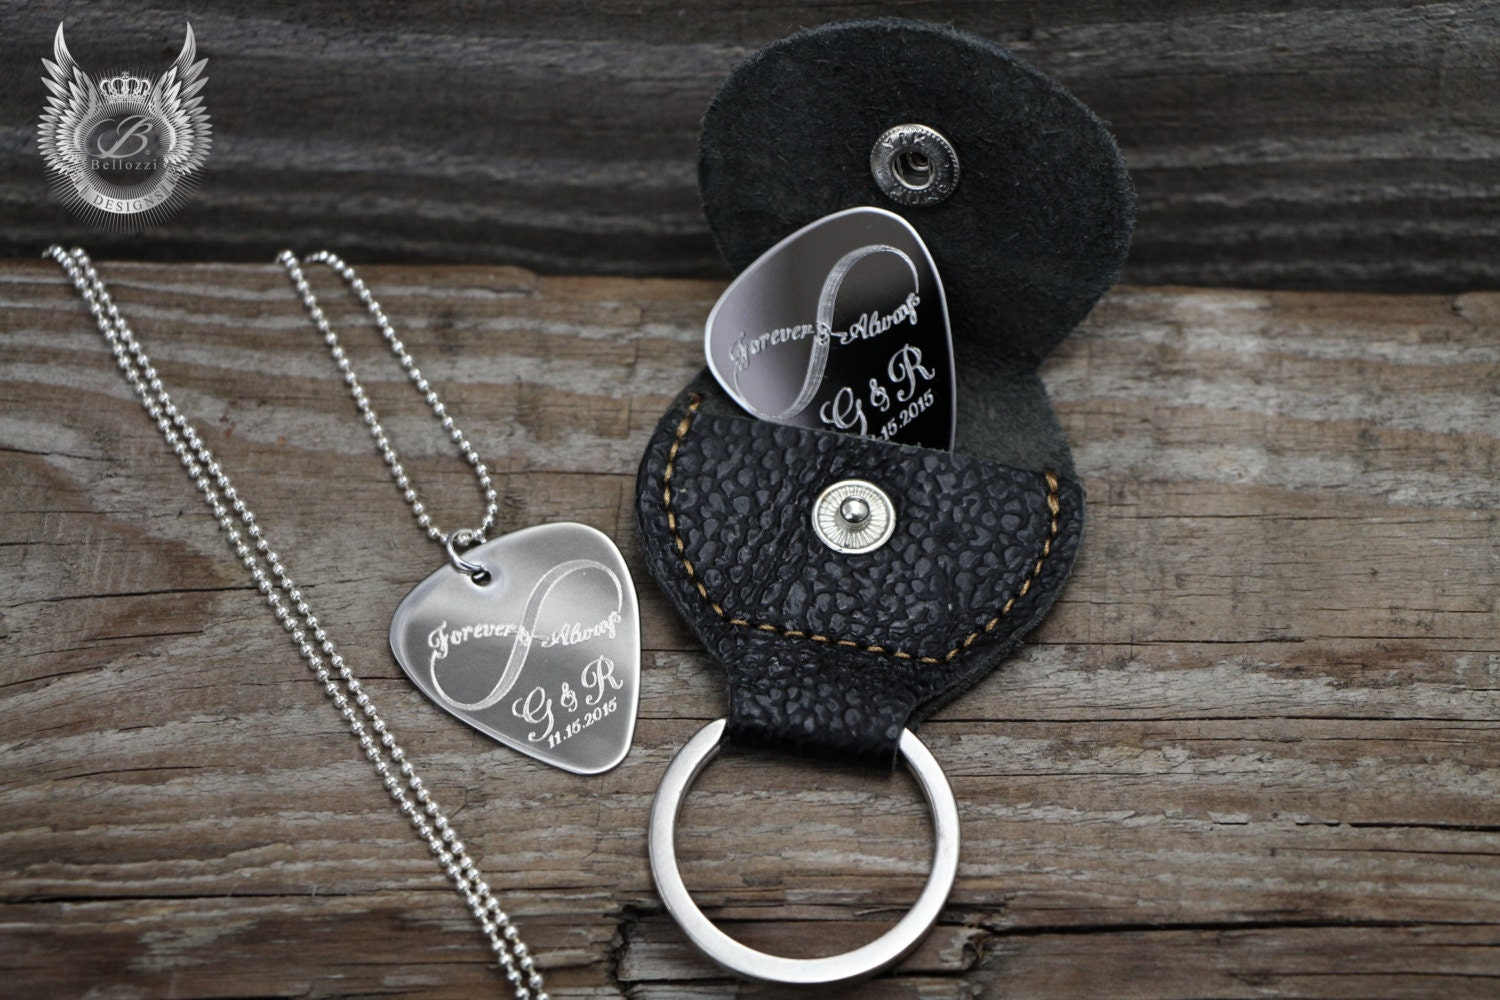 sale personalized guitar pick necklace and by bellozzidesigns. Black Bedroom Furniture Sets. Home Design Ideas